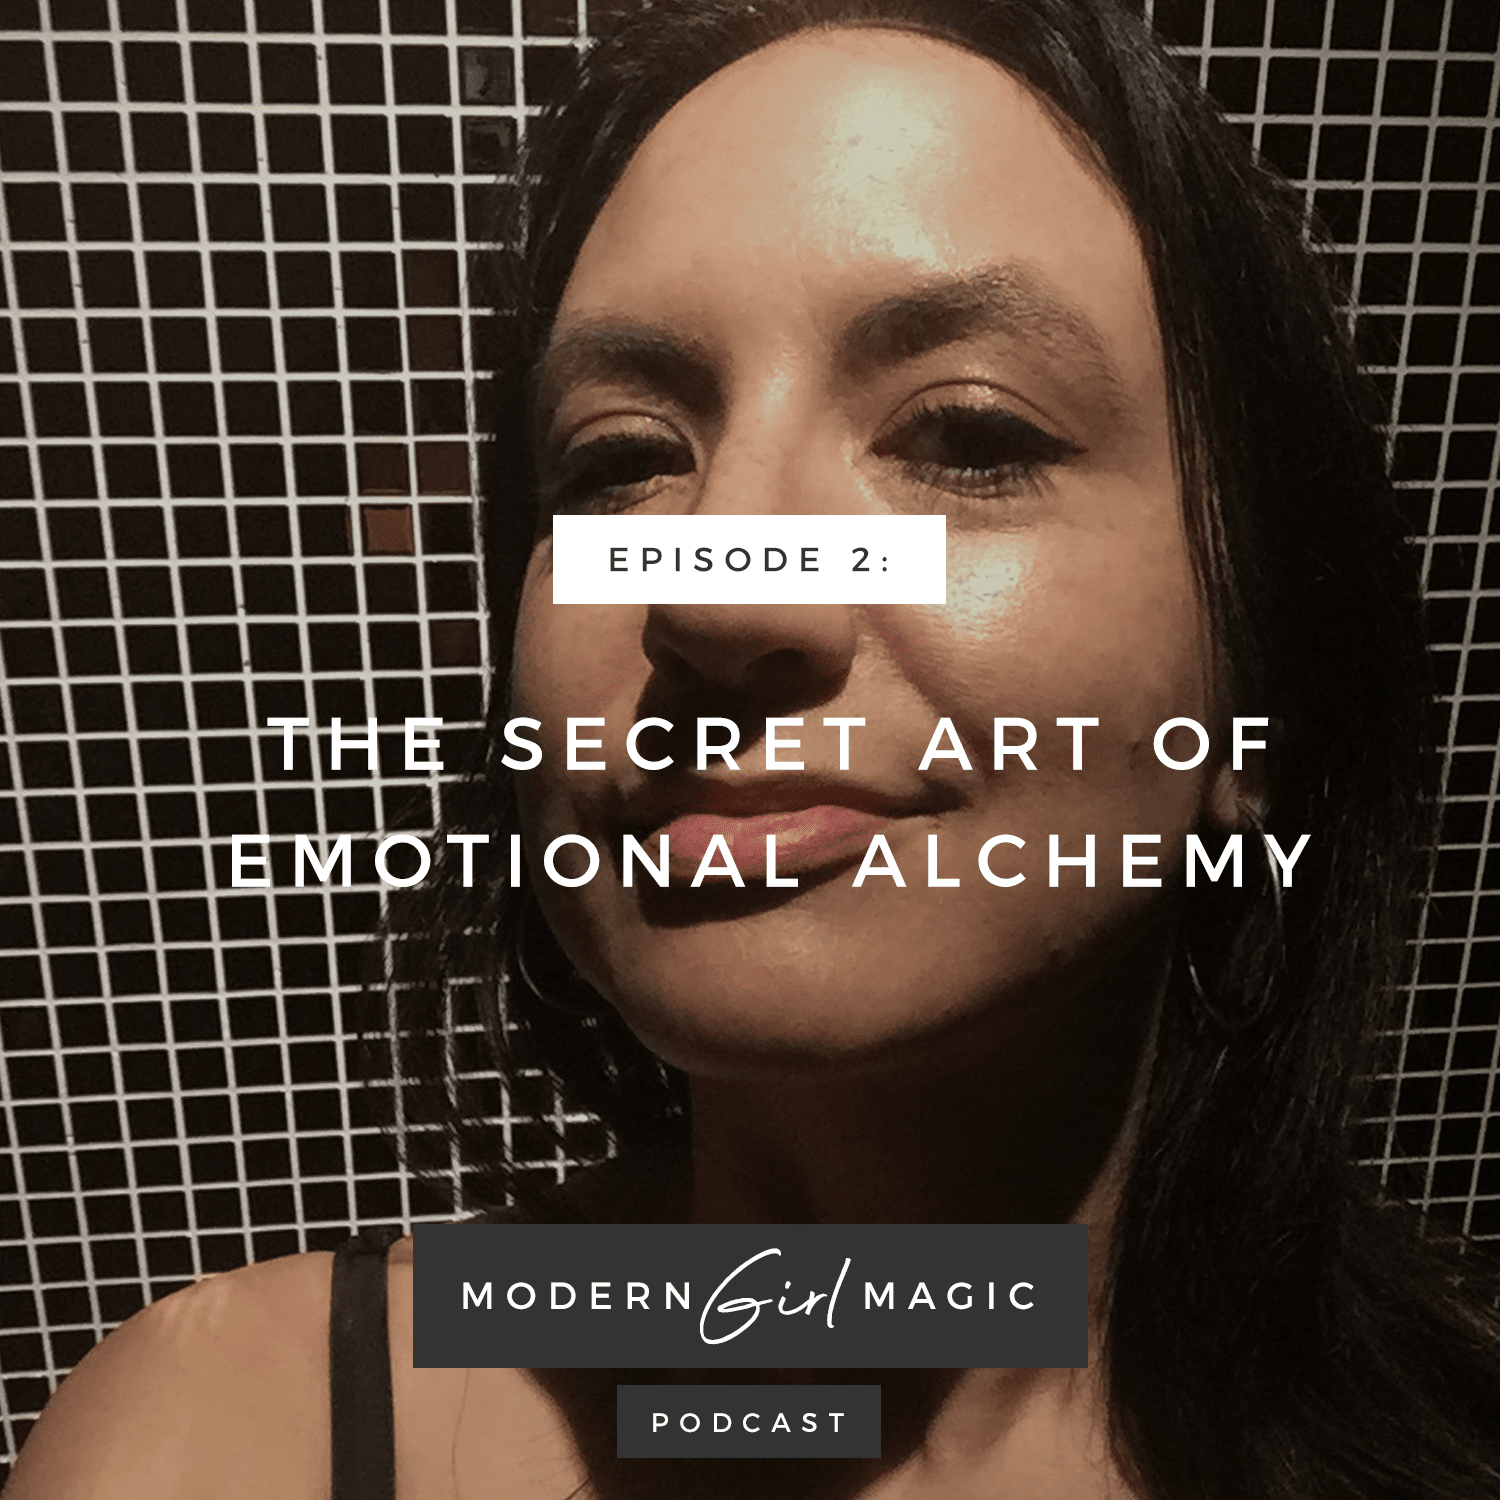 Modern Girl Magic Episode #2: The Secret Art of Emotional Alchemy